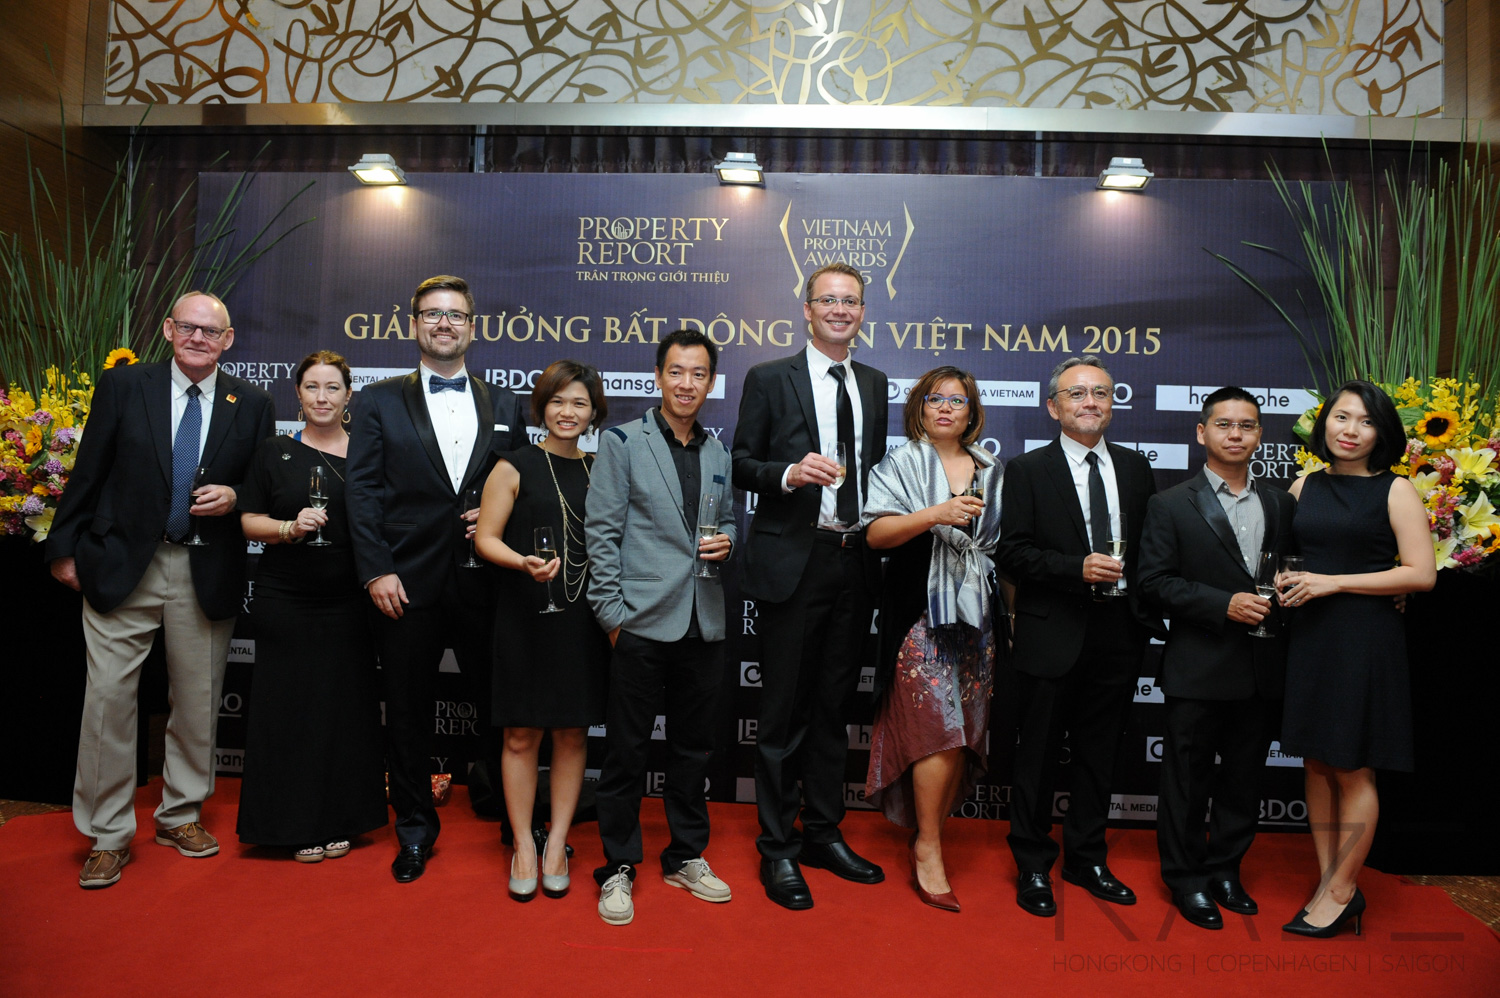 Vietnam Property Award 2015